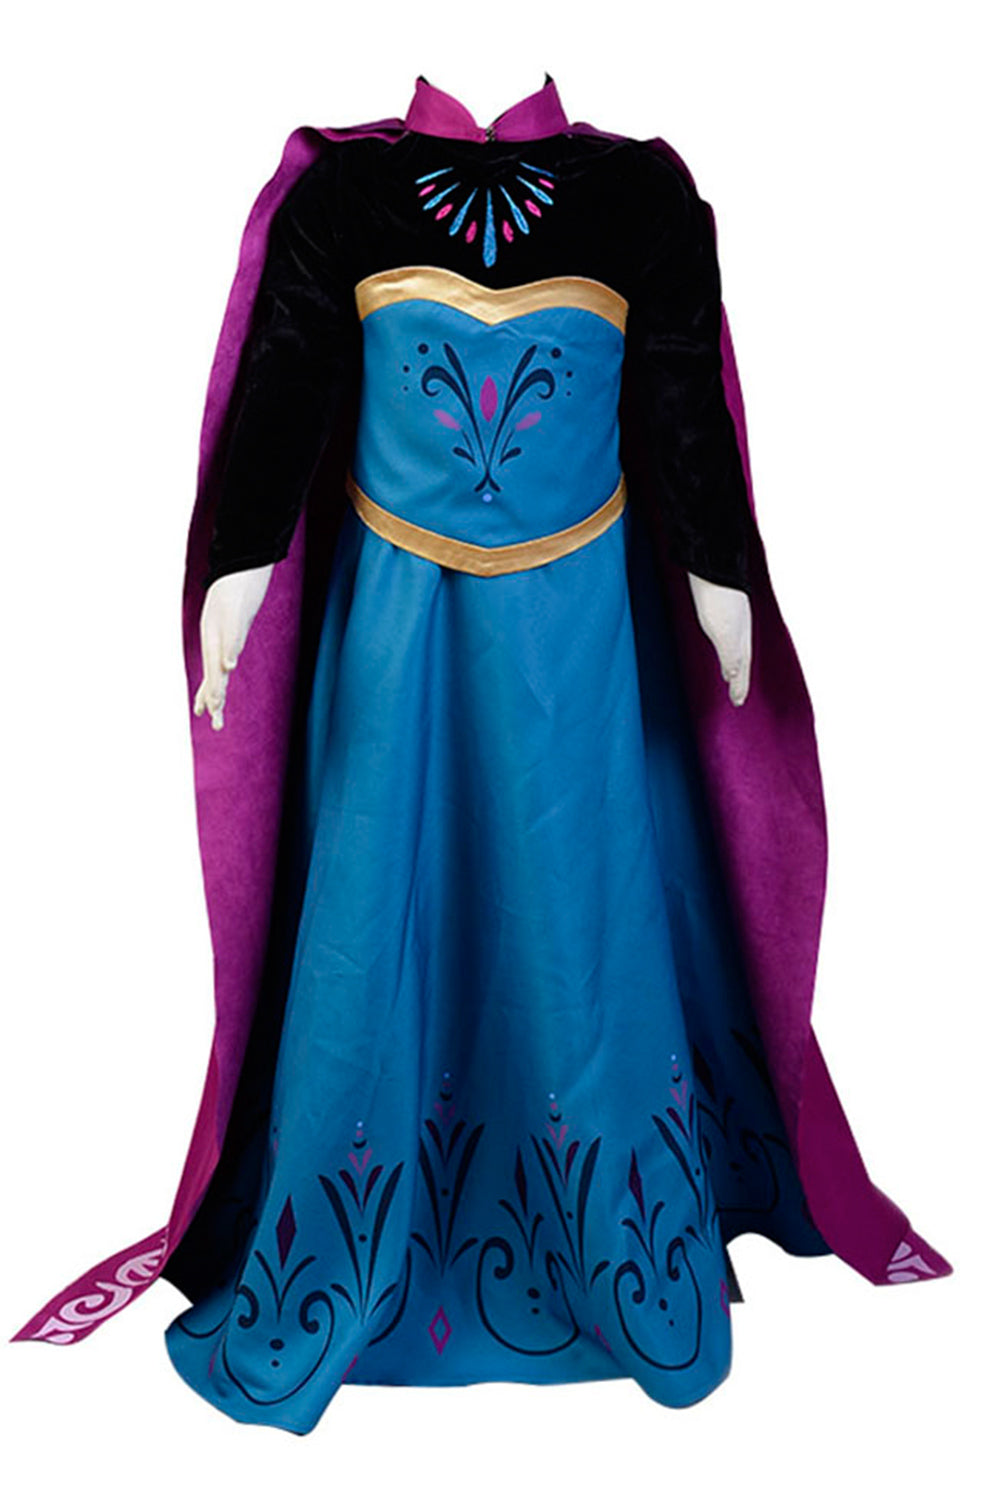 Frozen Elsa Coronation Dress Child Ver Halloween Cosplay Costume